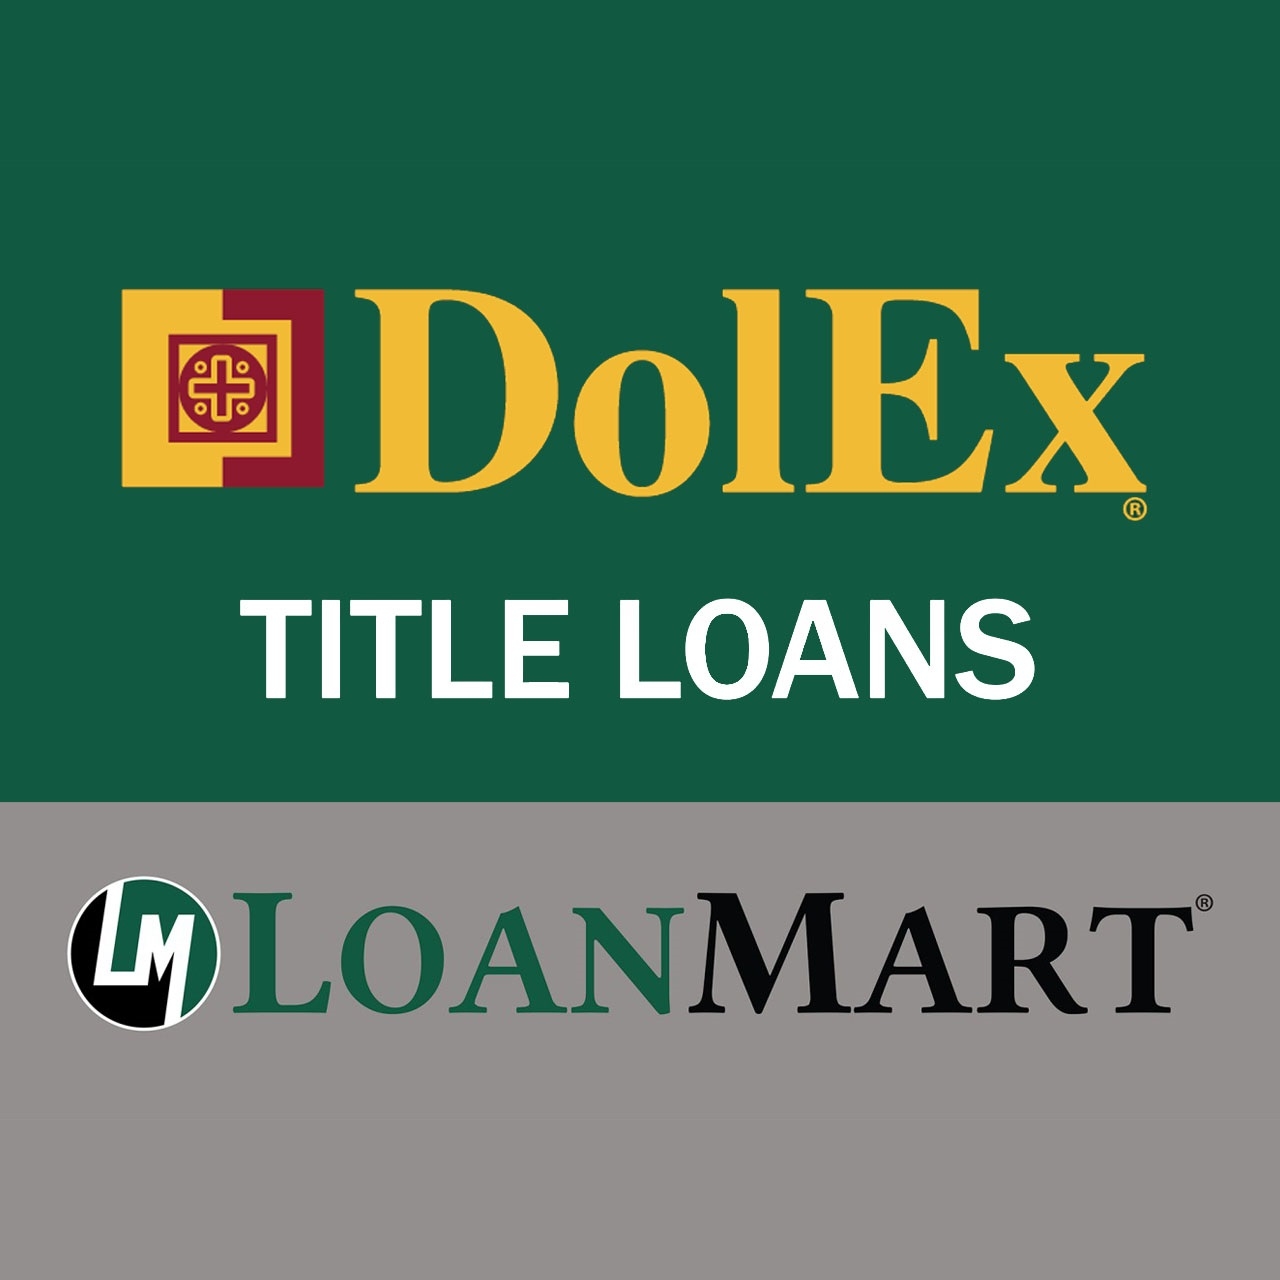 DolEx Title Loans - LoanMart Ontario - Ontario, CA 91762 - (909)321-6095 | ShowMeLocal.com